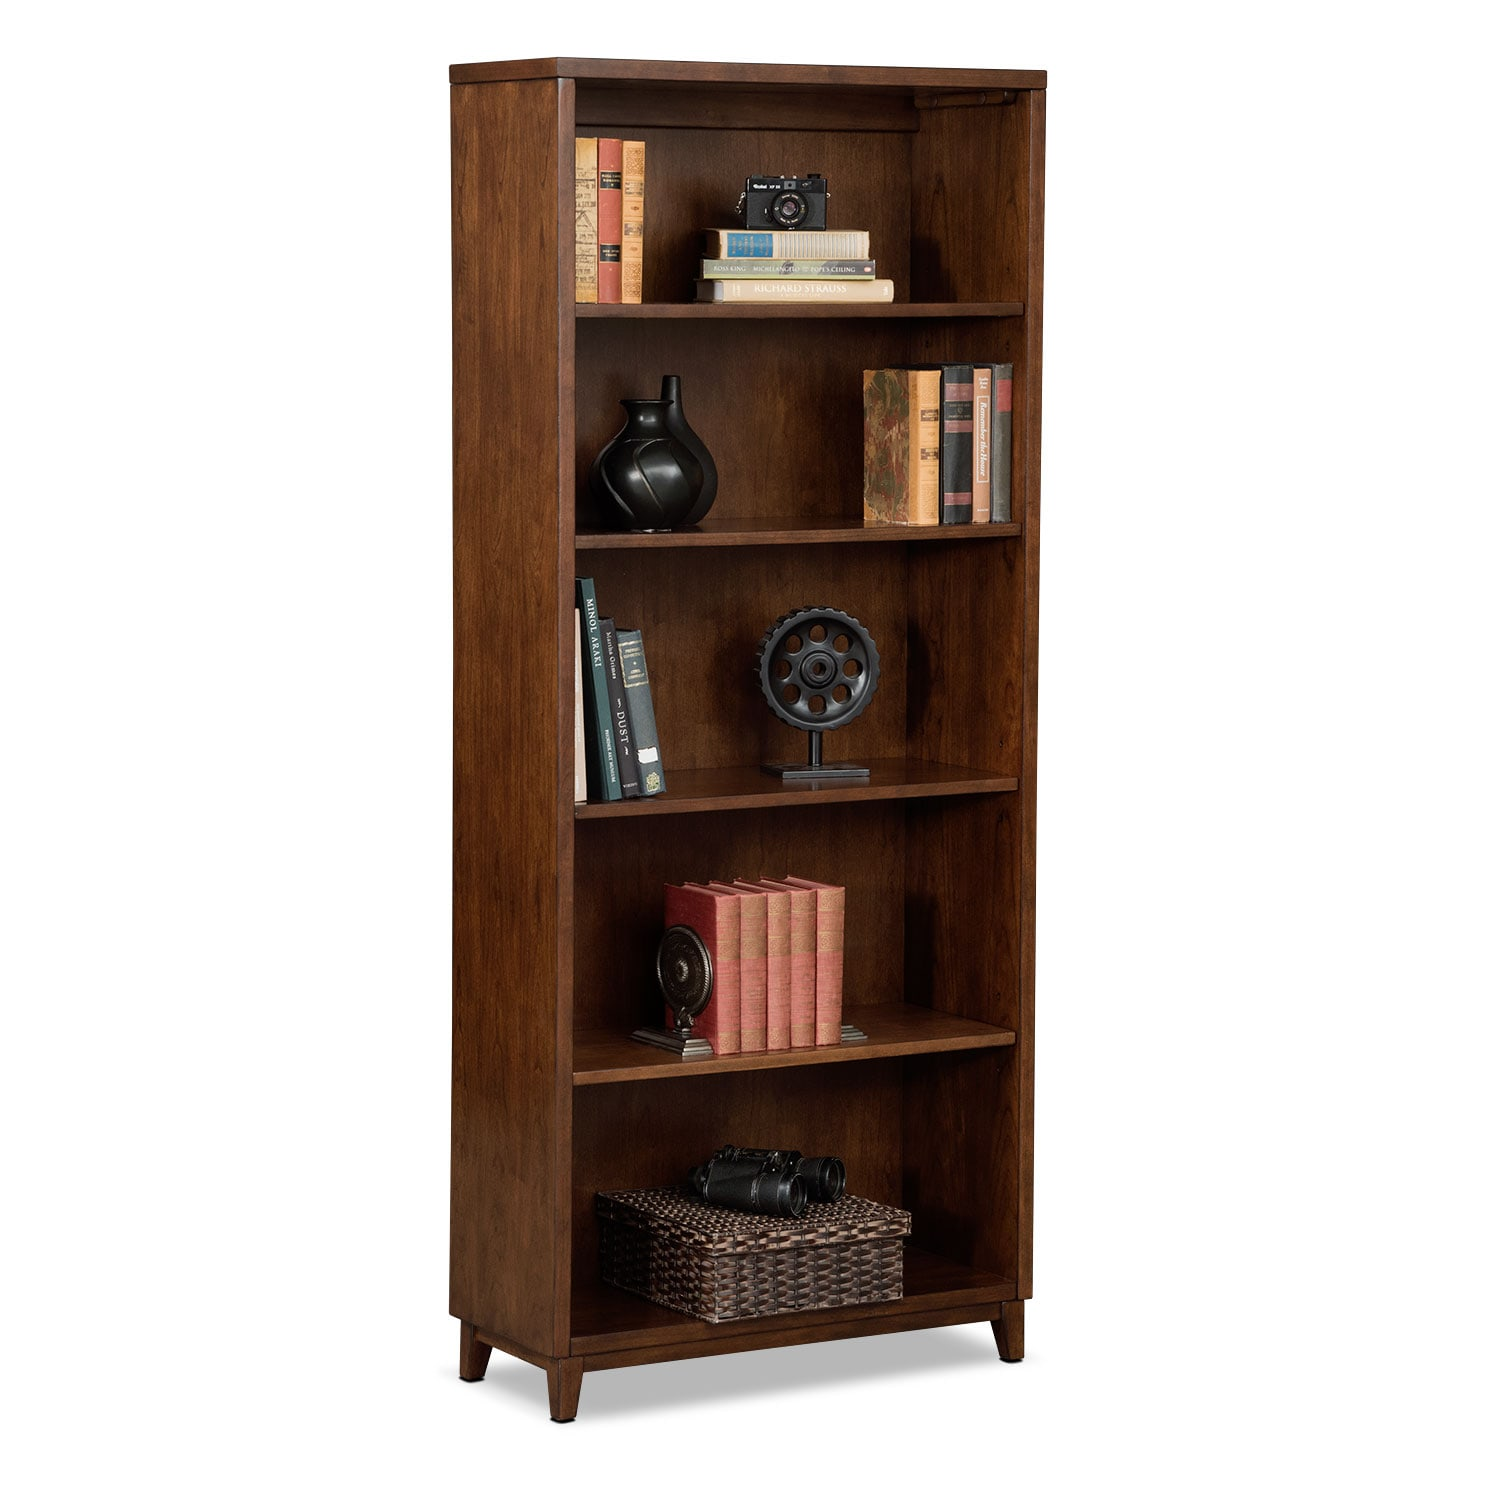 "Home Office Furniture - Oslo Cherry 70"" Bookcase"